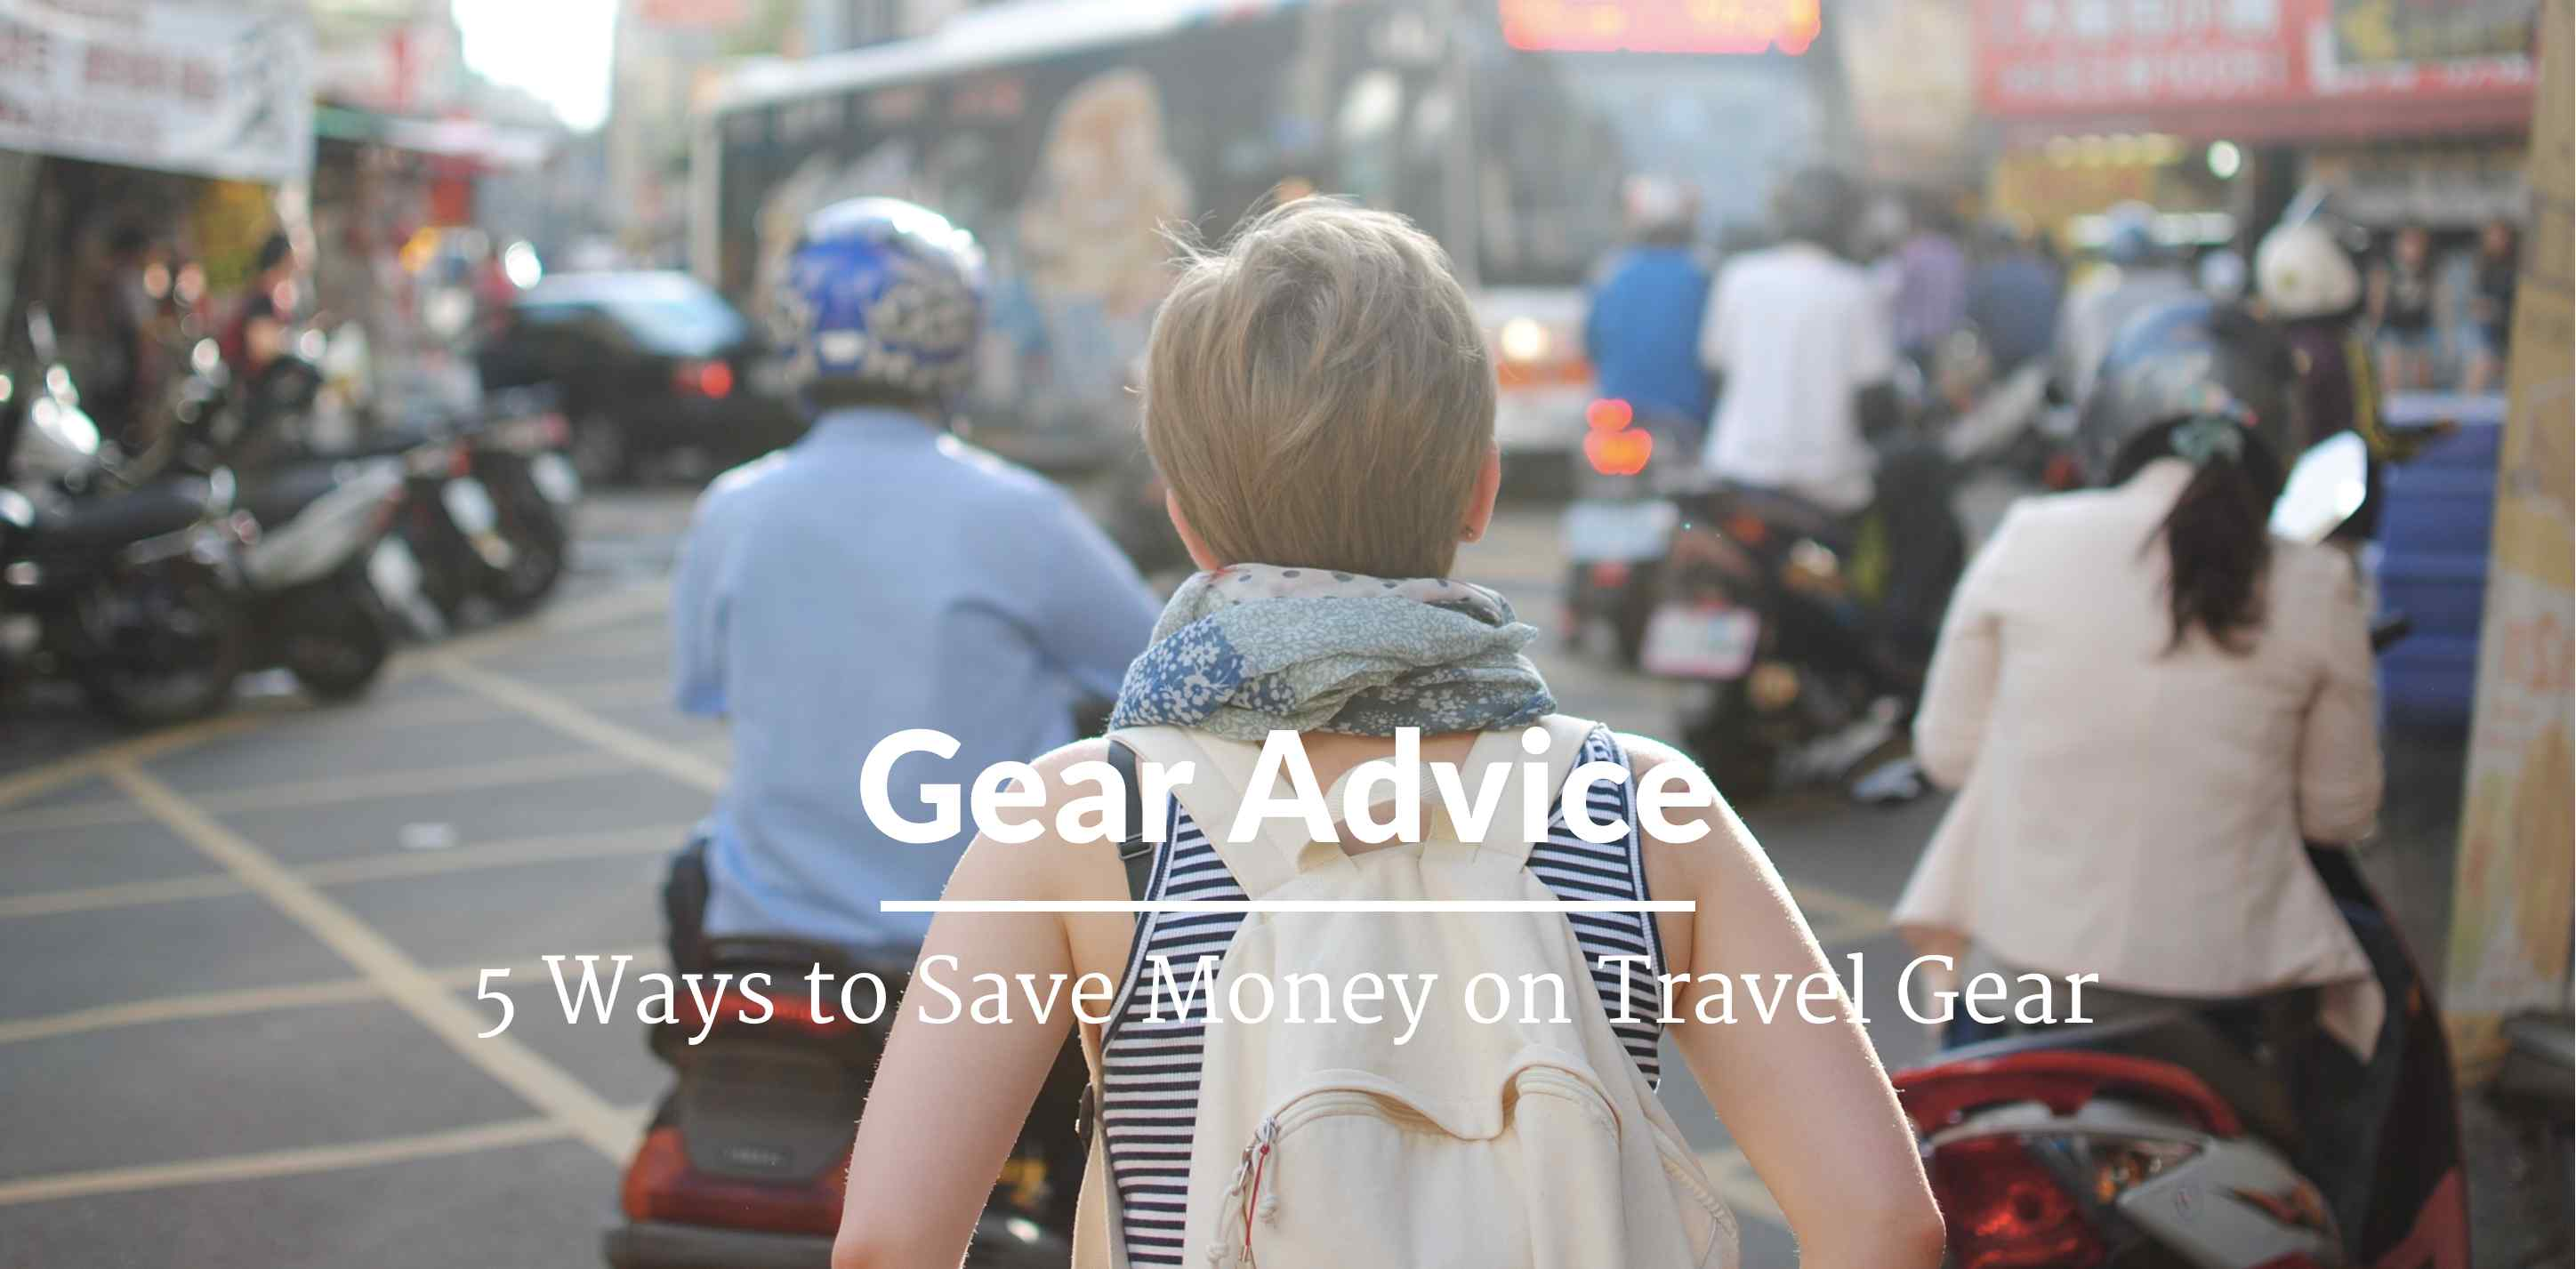 gear advice save money on travel gear